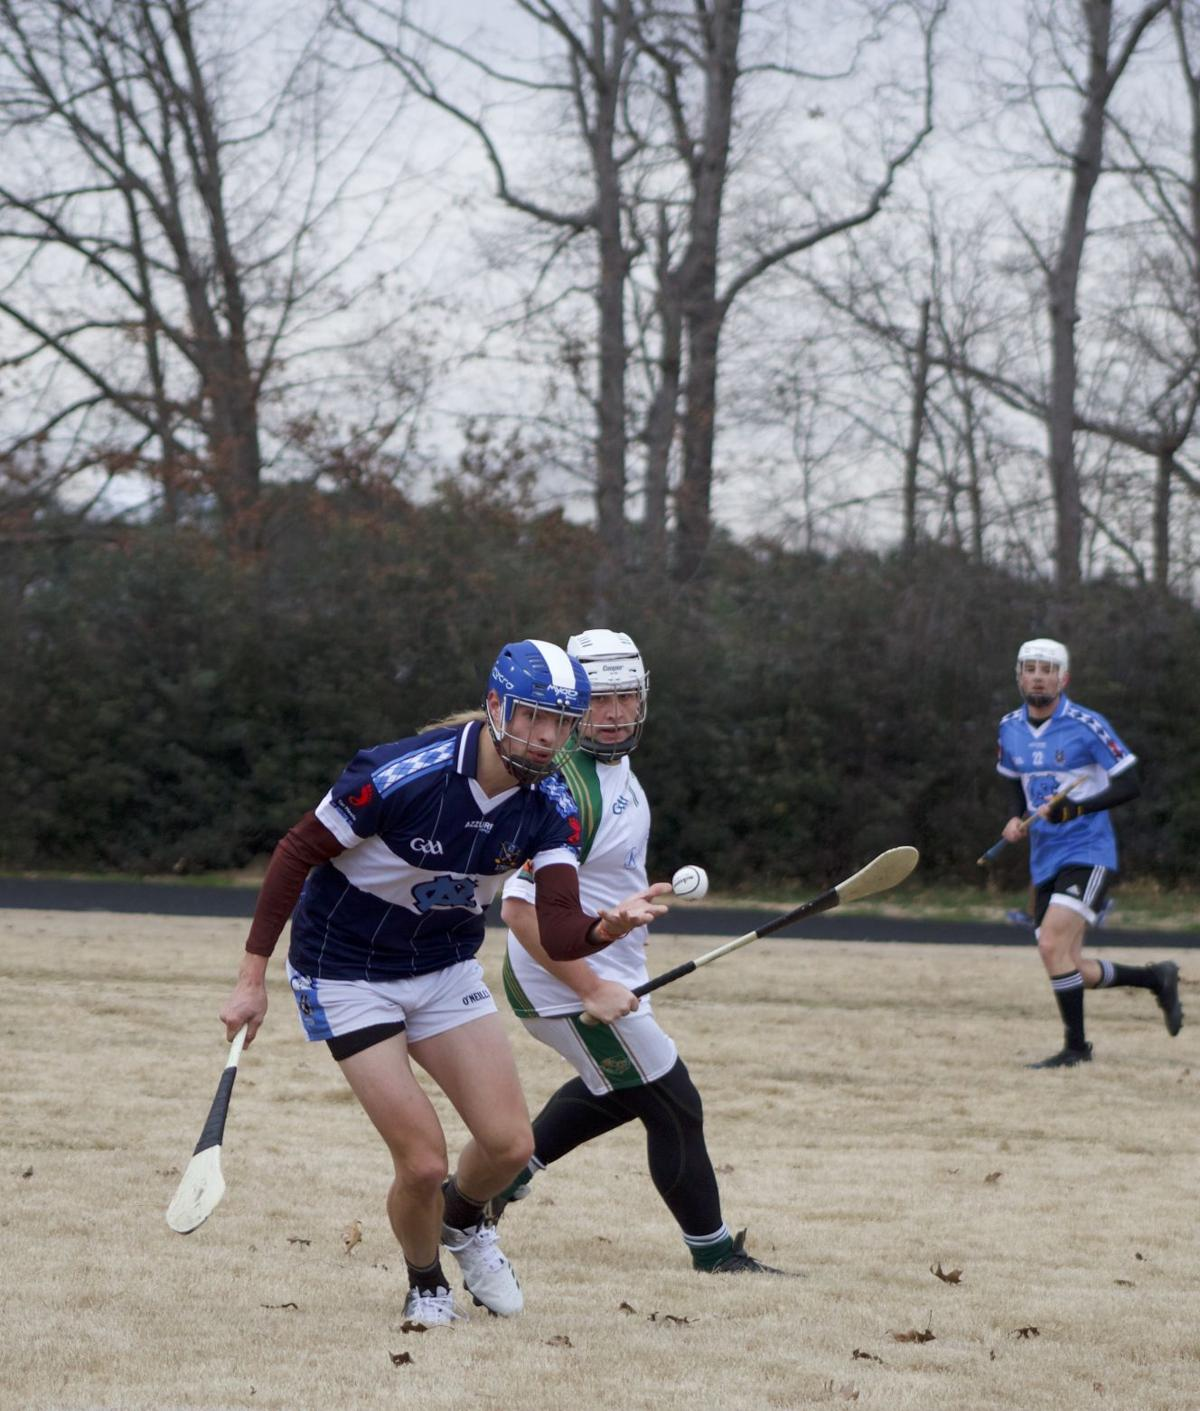 53dc52f73cf4f UNC hurling team earns third place in national competition | Sports ...